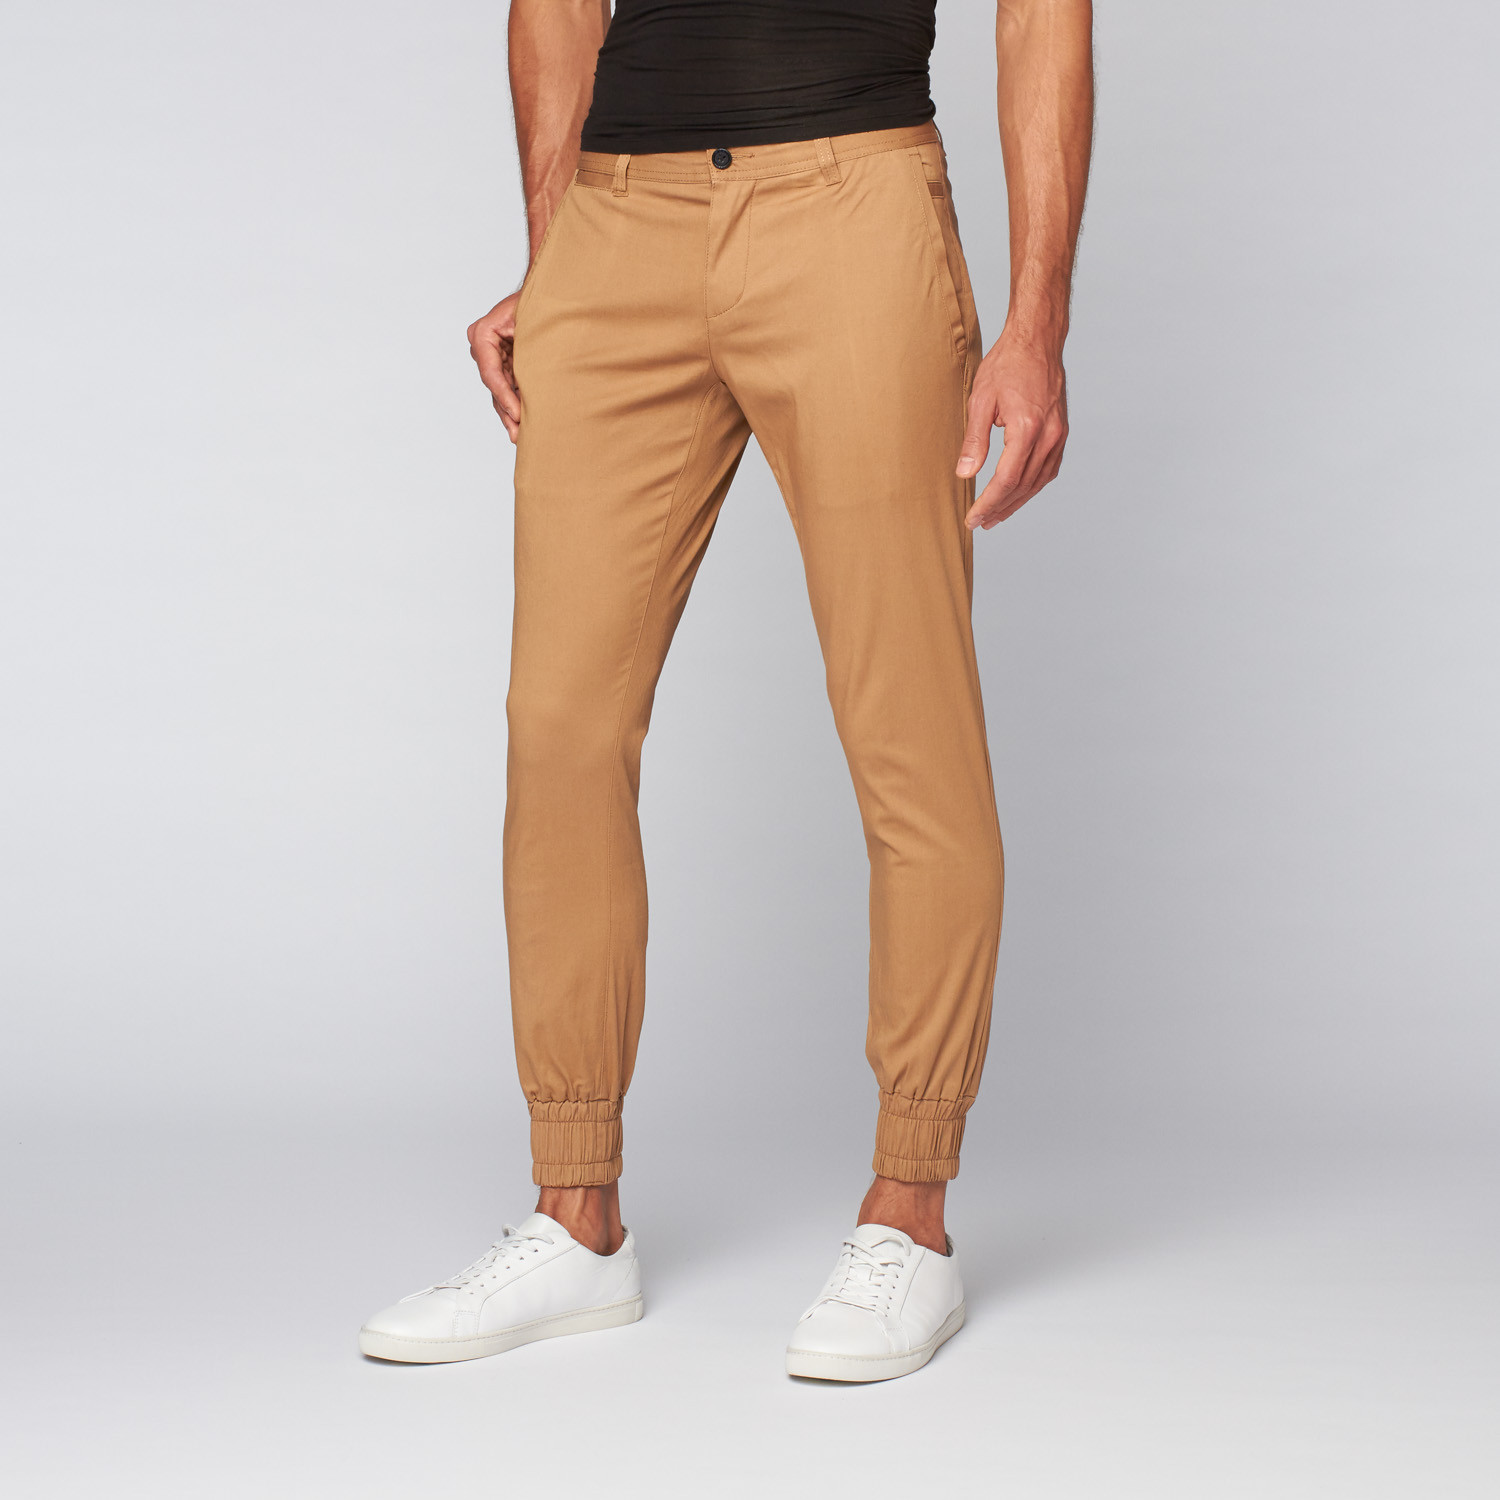 bottom price top-rated authentic big discount of 2019 Jordan Slim Lightweight Stretch Twill Jogger // Khaki ...